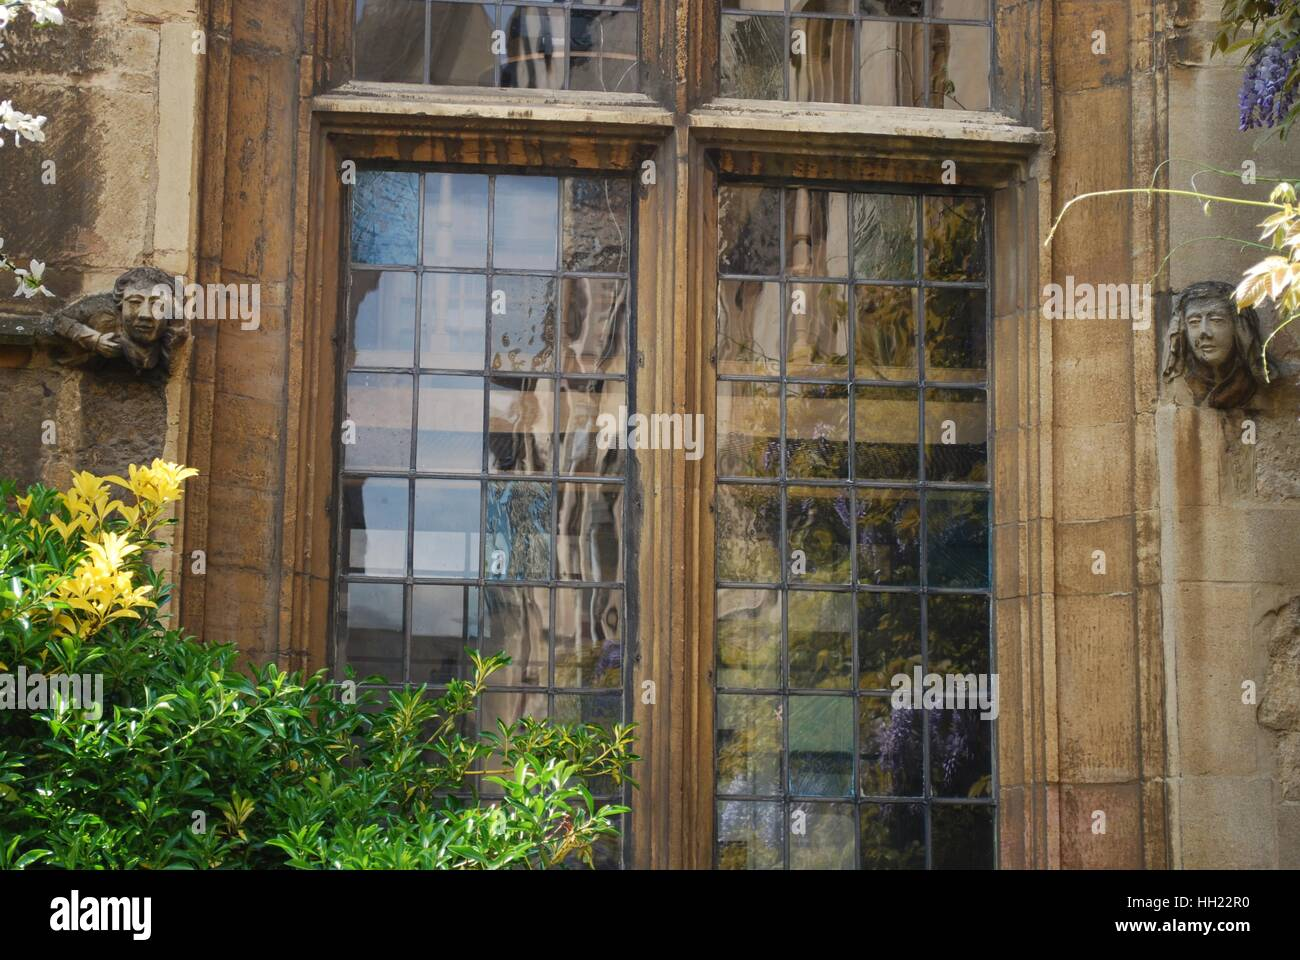 lead light windows in old stone building at Oxford college - Stock Image